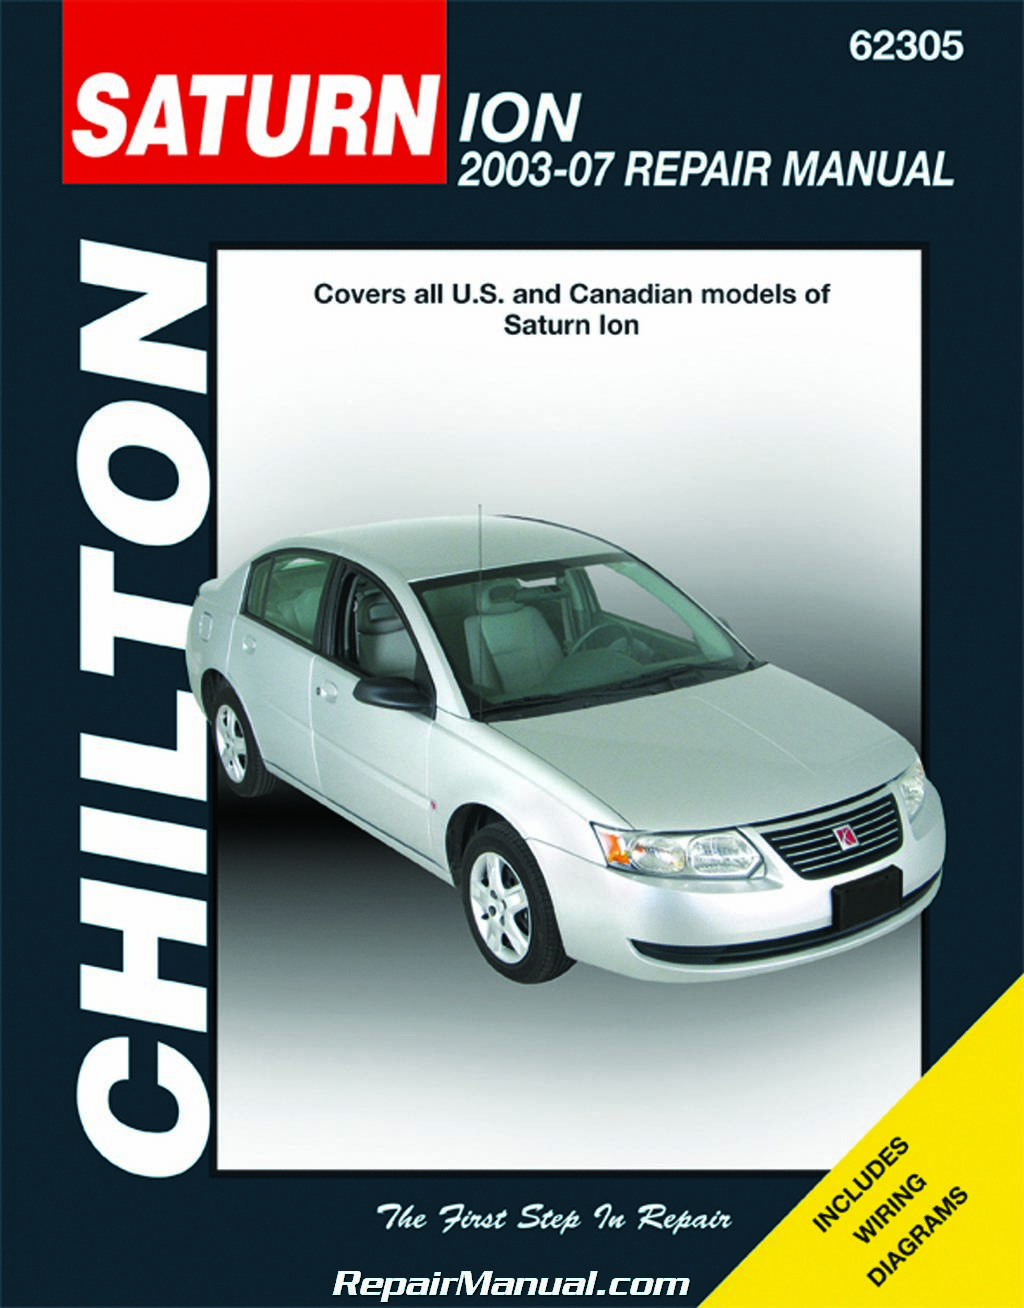 1993 saturn sl2 repair manual free owners manual u2022 rh wordworksbysea com 1994 Saturn 1992 saturn owners manual